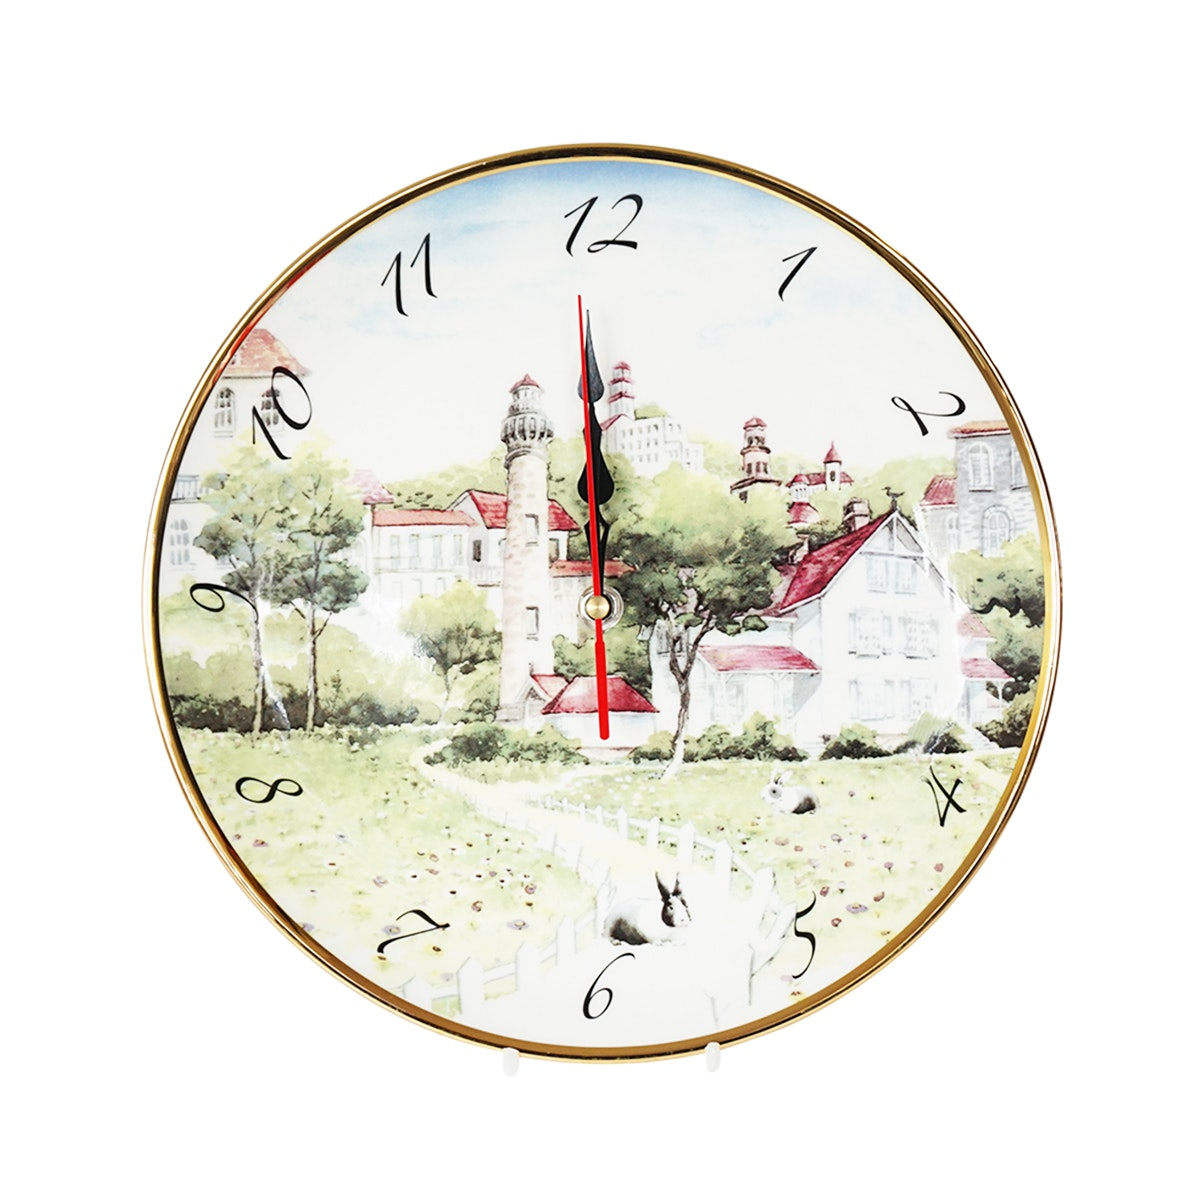 Saint James Premium Tableware House 2 Clock Plate